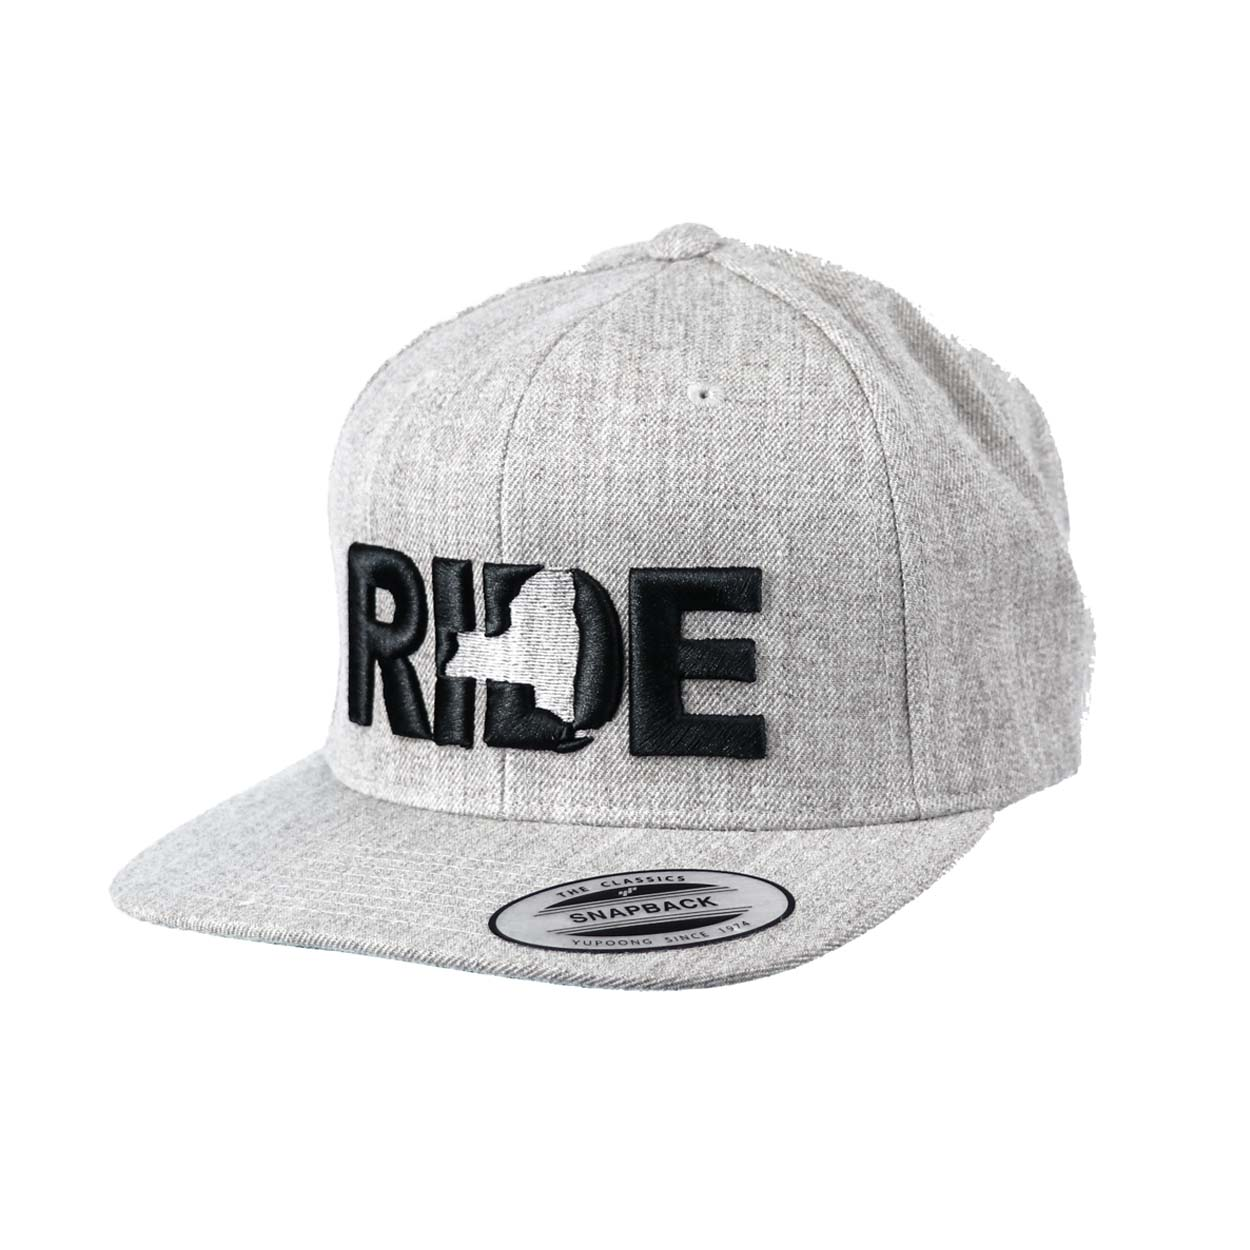 Ride New York Classic Embroidered  Snapback Flat Brim Hat Gray/Black